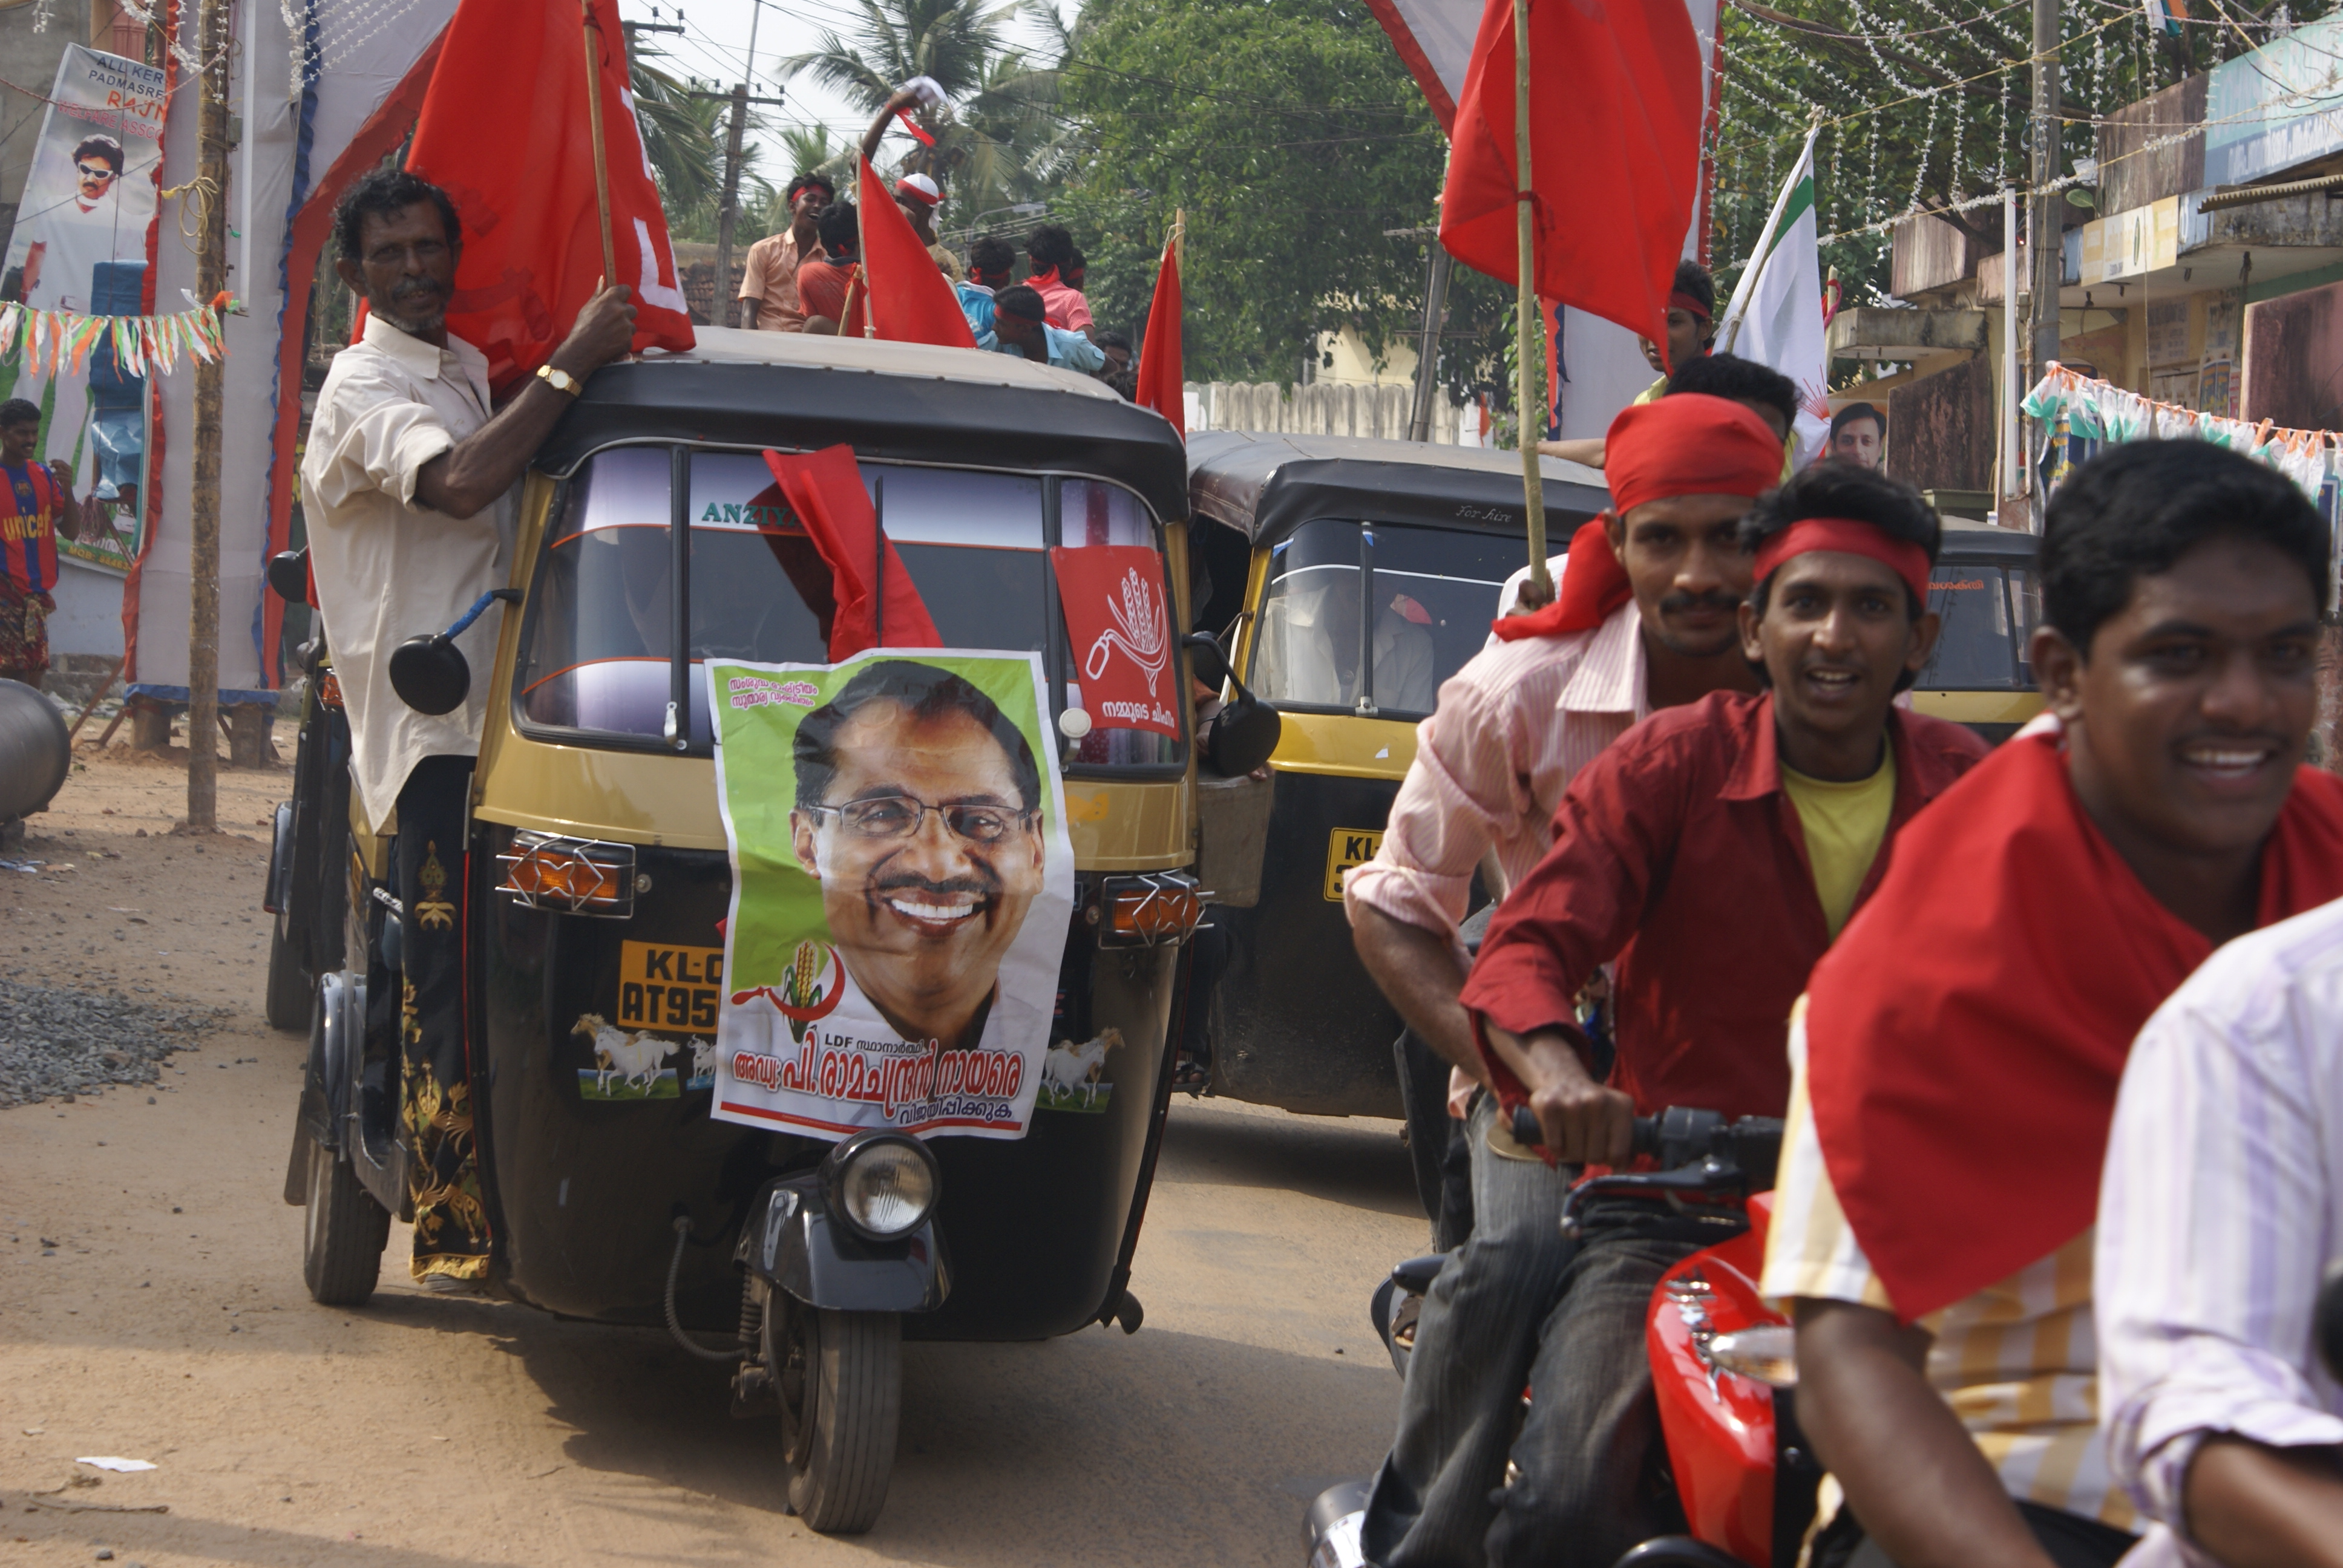 Communist party supporters during the Indian general elections, 2009.